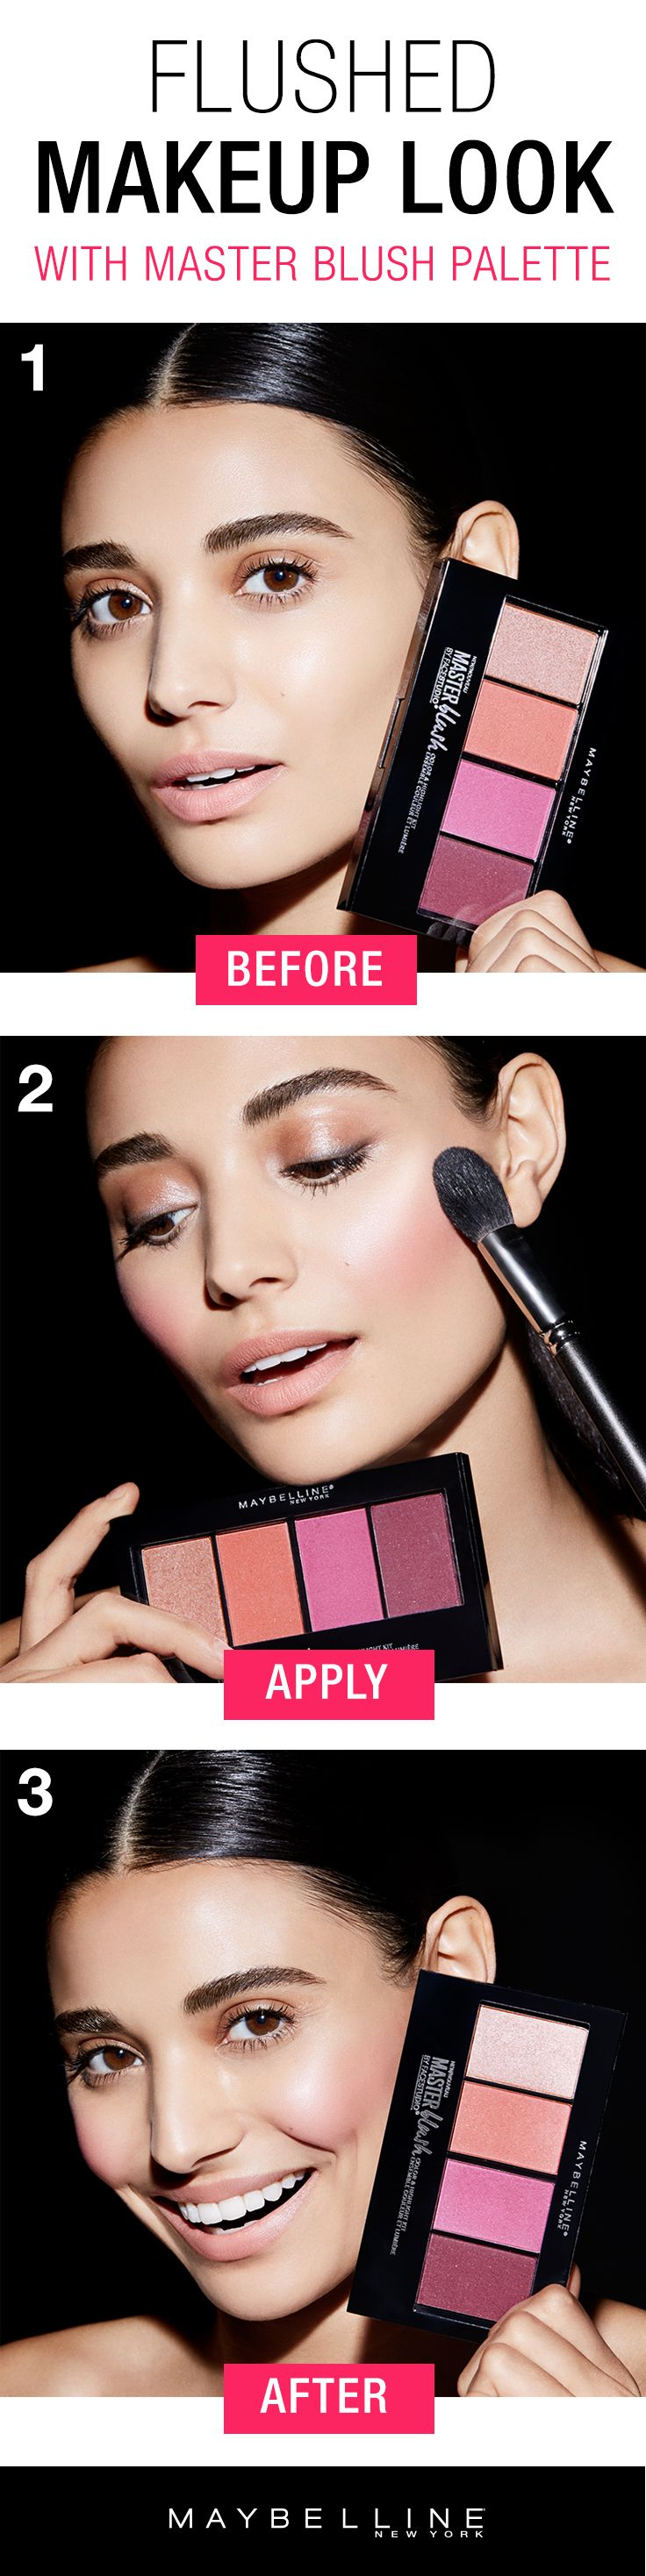 Nothing says spring more than a flushed, blushing look.  Customize your blush look with Maybelline Master Blush Palette. Featuring one highlighter shade and three blendable blush shades, you can create any blush look with just one easy palette. Use the highlighter alone or layer on top of blush for a shimmery, metallic blush look. Click through to shop the flushed makeup look!